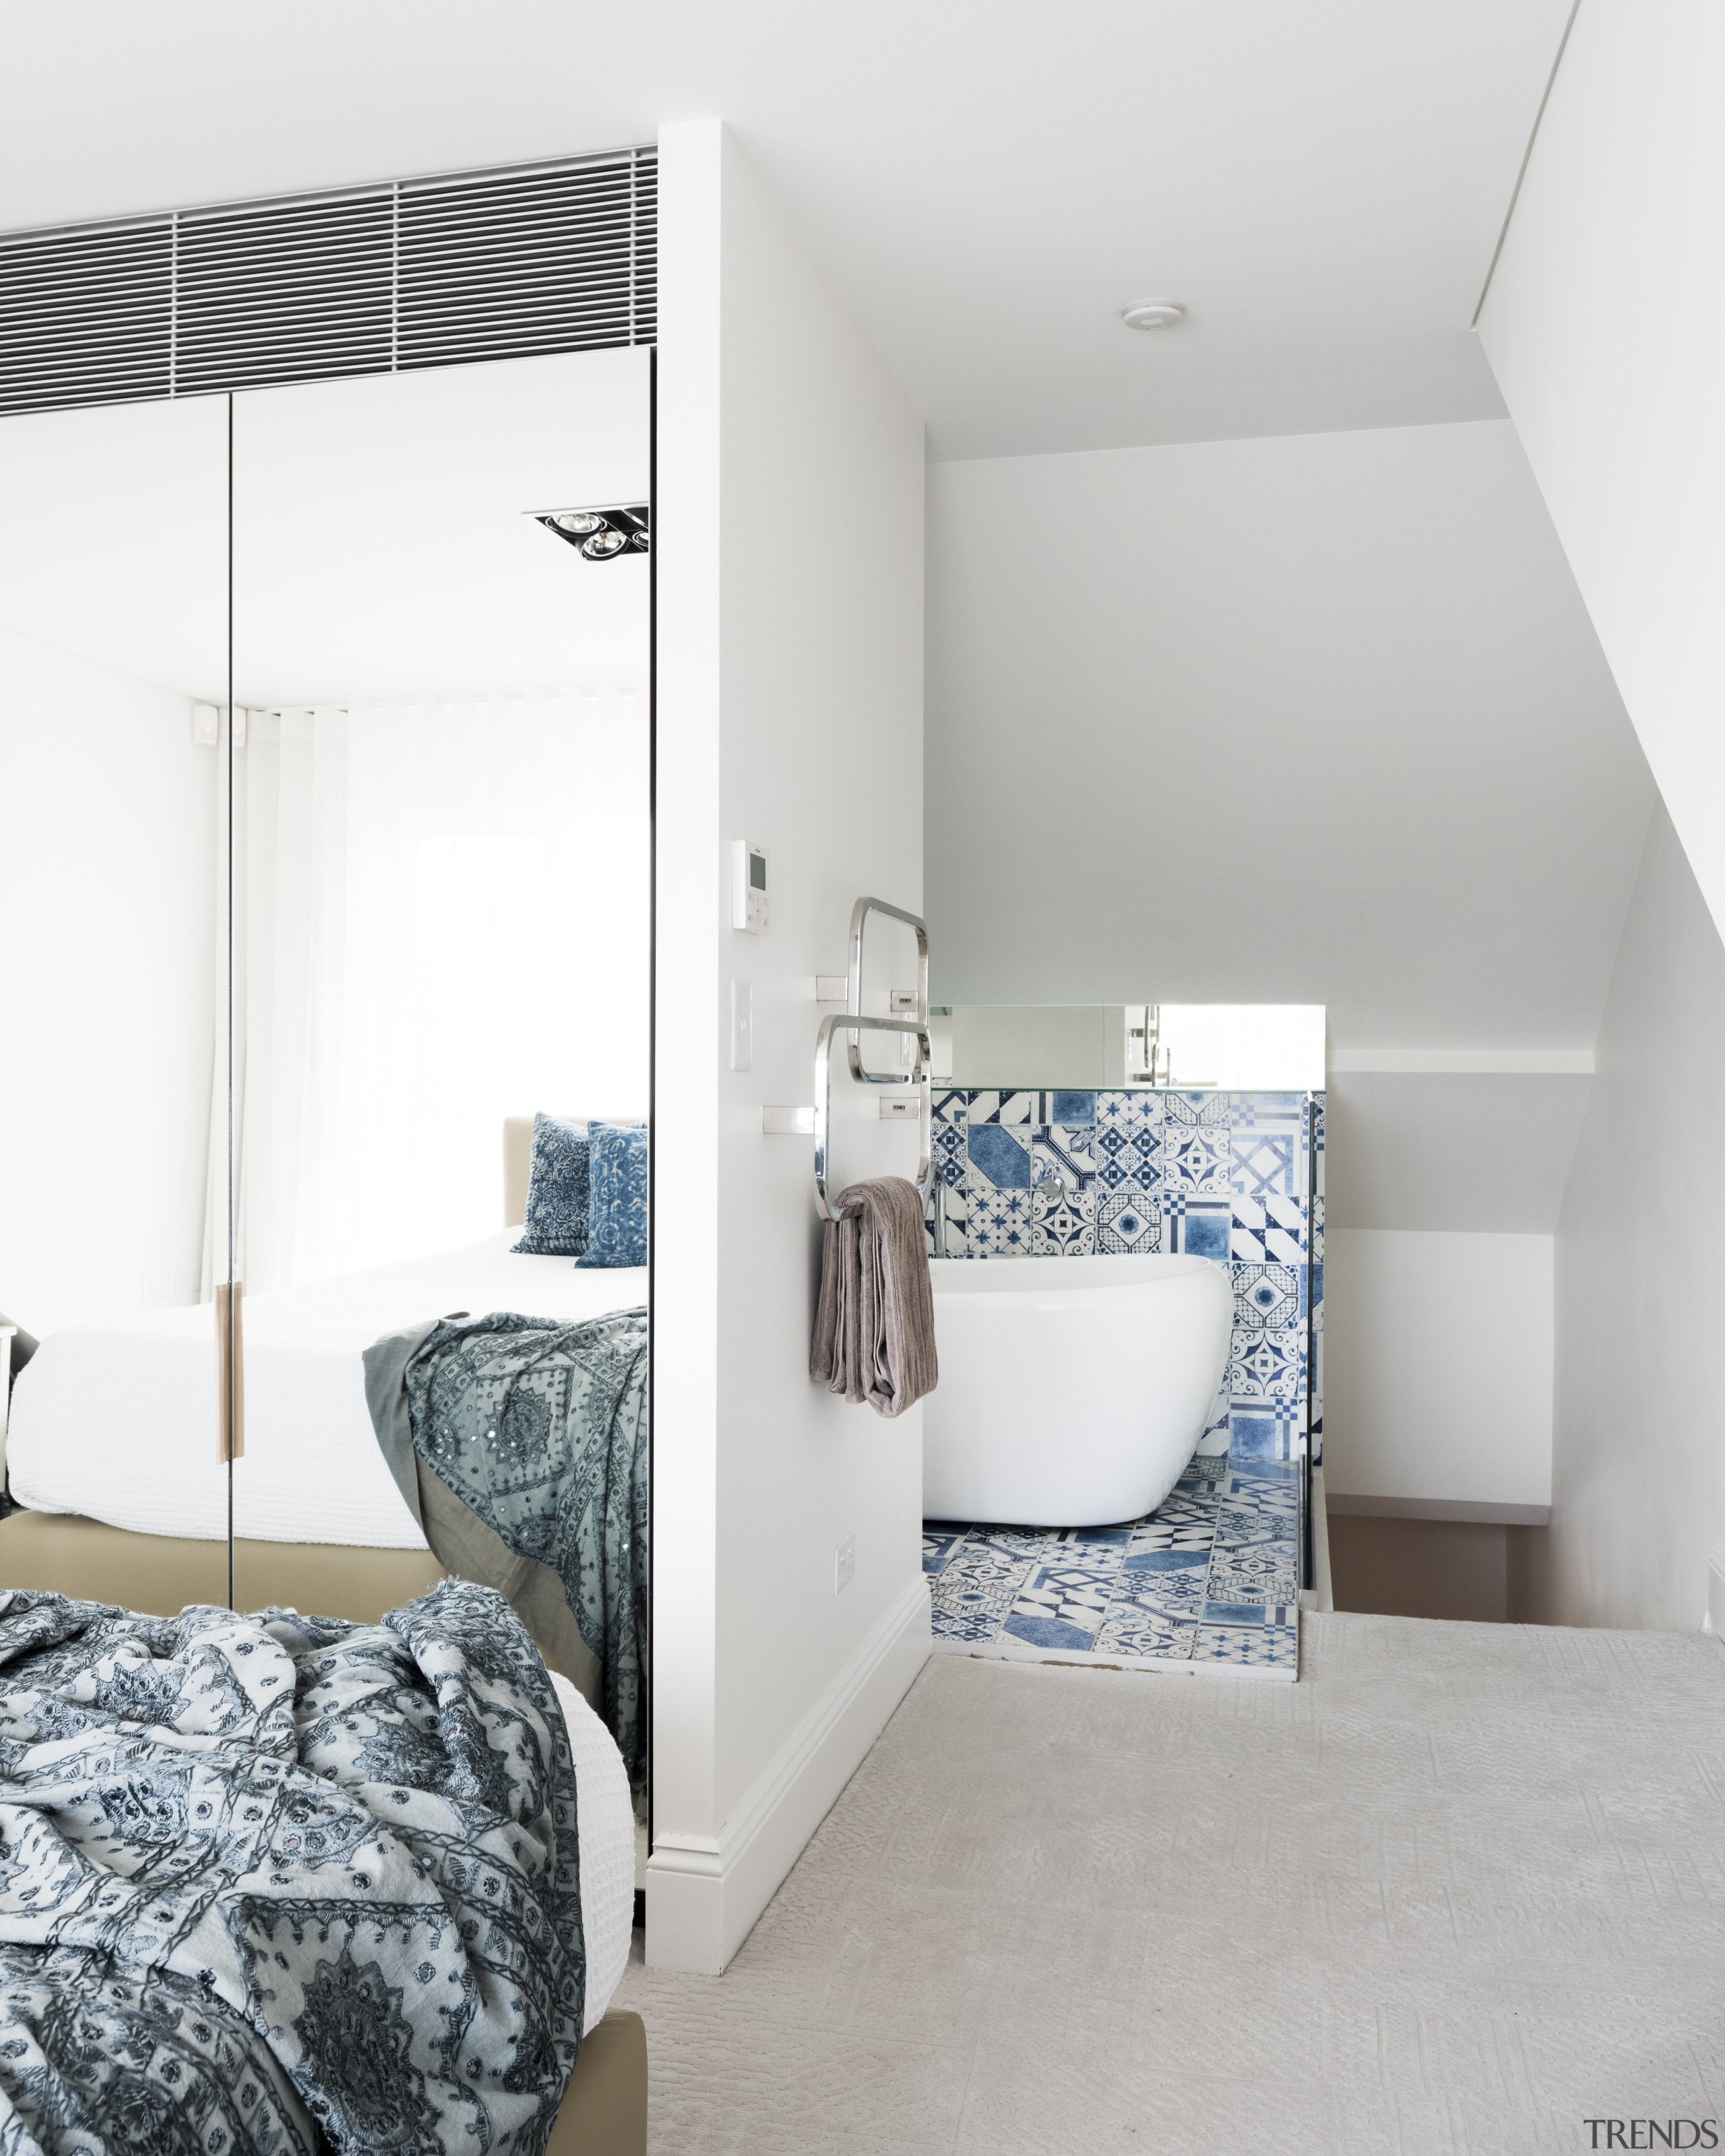 This master suite utilises previously unused space under architecture, bathroom, bed frame, bedroom, floor, home, house, interior design, product, room, tap, wall, white